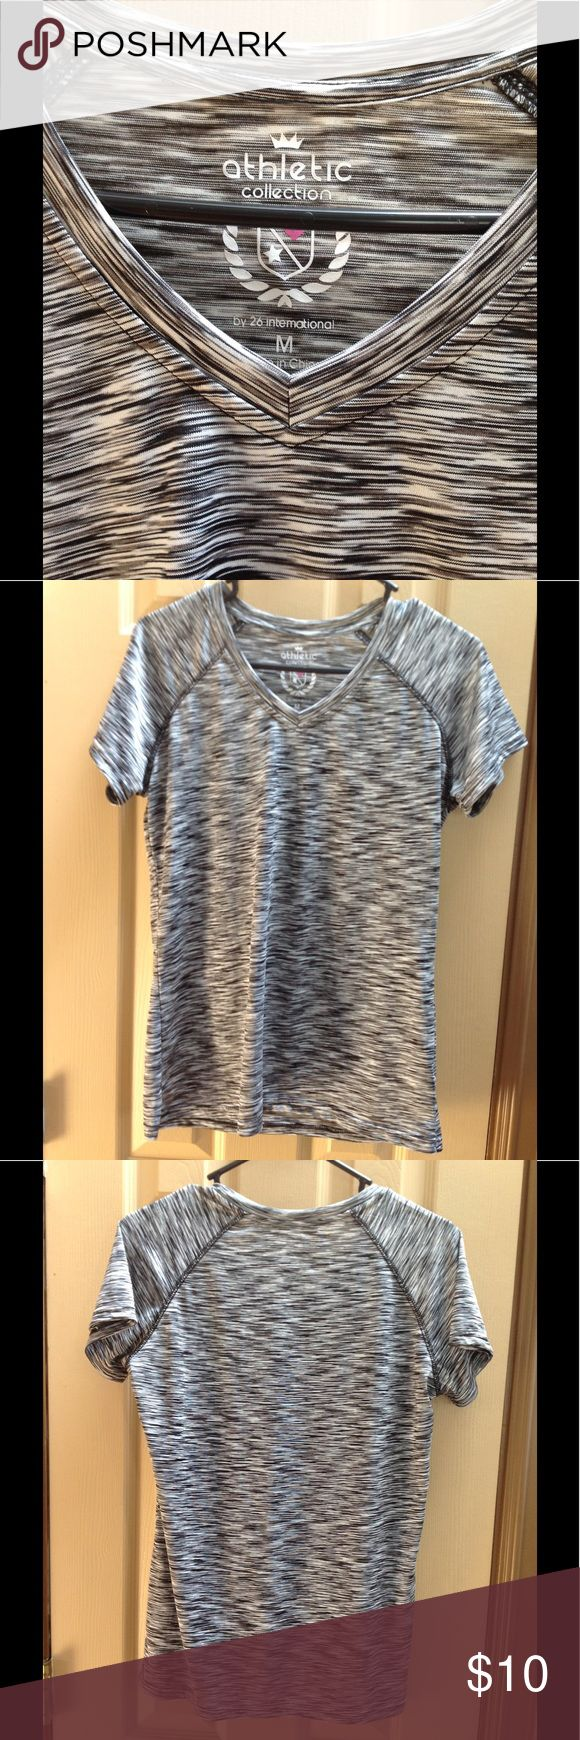 Black and white verigated v neck Athletic shirt ATHLETIC COLLECTION size Medium Brand New 100% polyester Black and white short sleeve Athletic collection Tops Tees - Short Sleeve